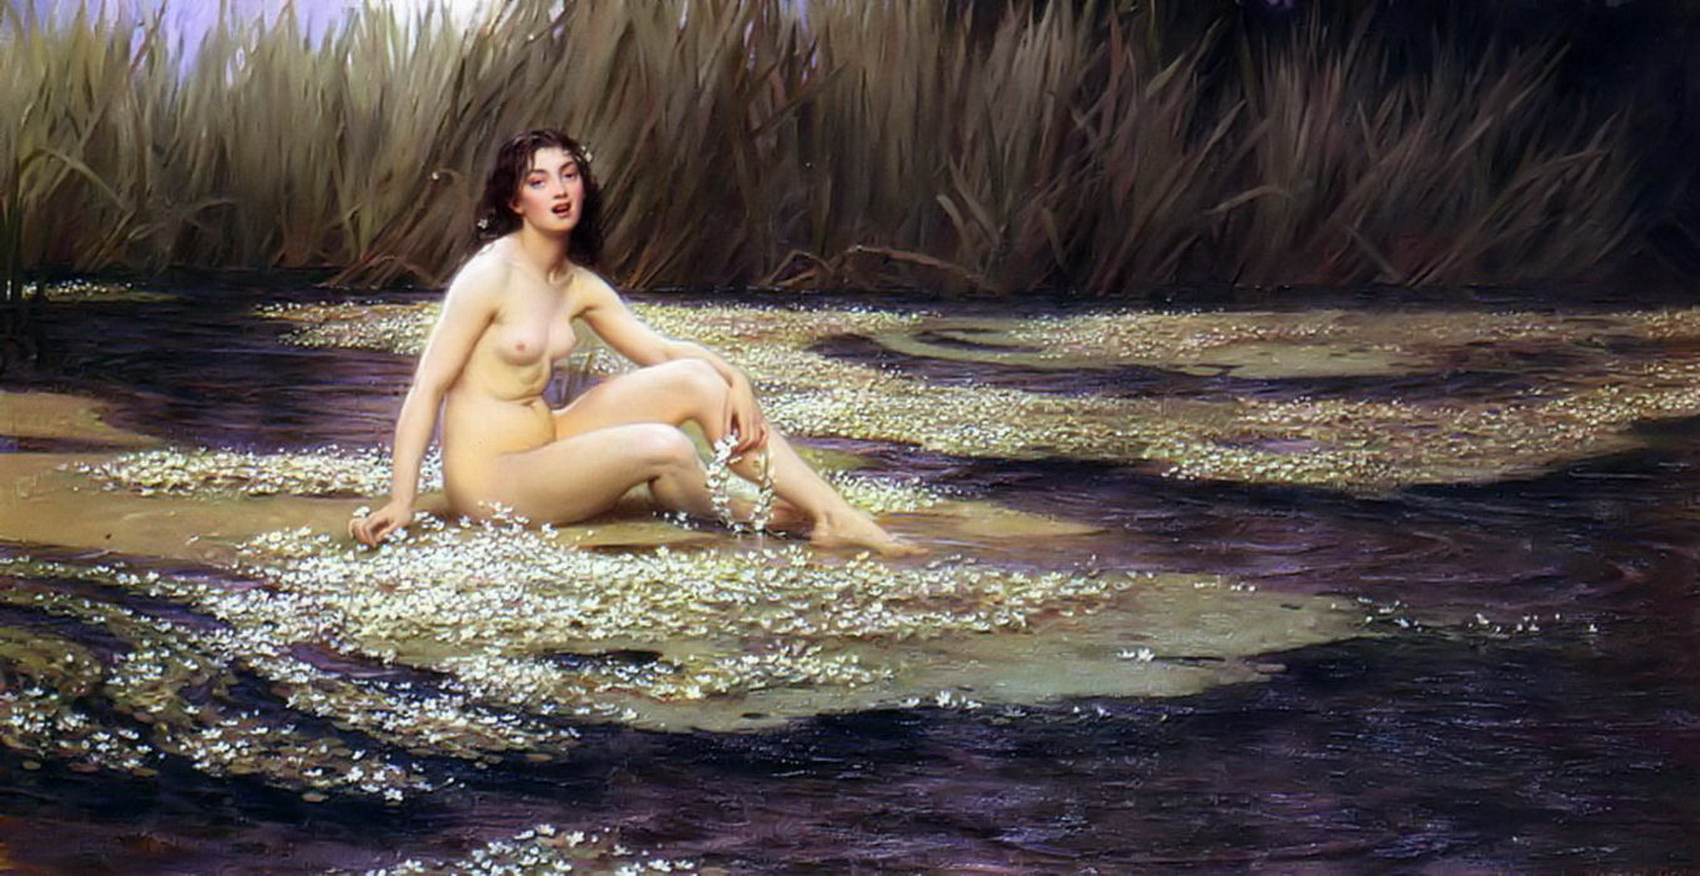 File:Draper-The Water Nymph.jpg - Wikipedia, the free encyclopedia